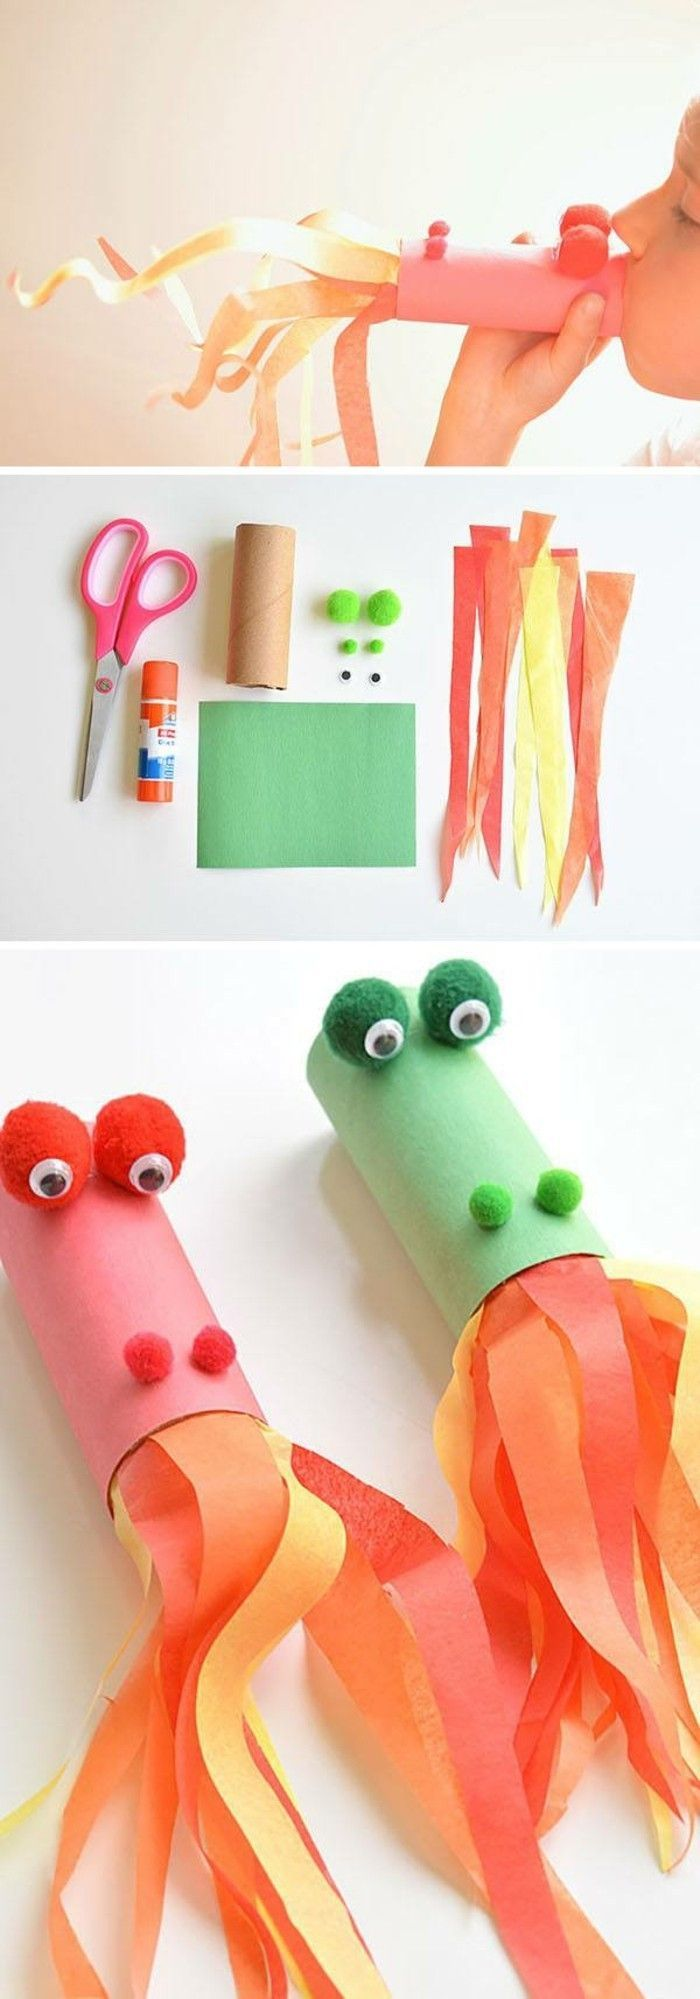 99 DIY ideas for crafting with toilet paper rolls